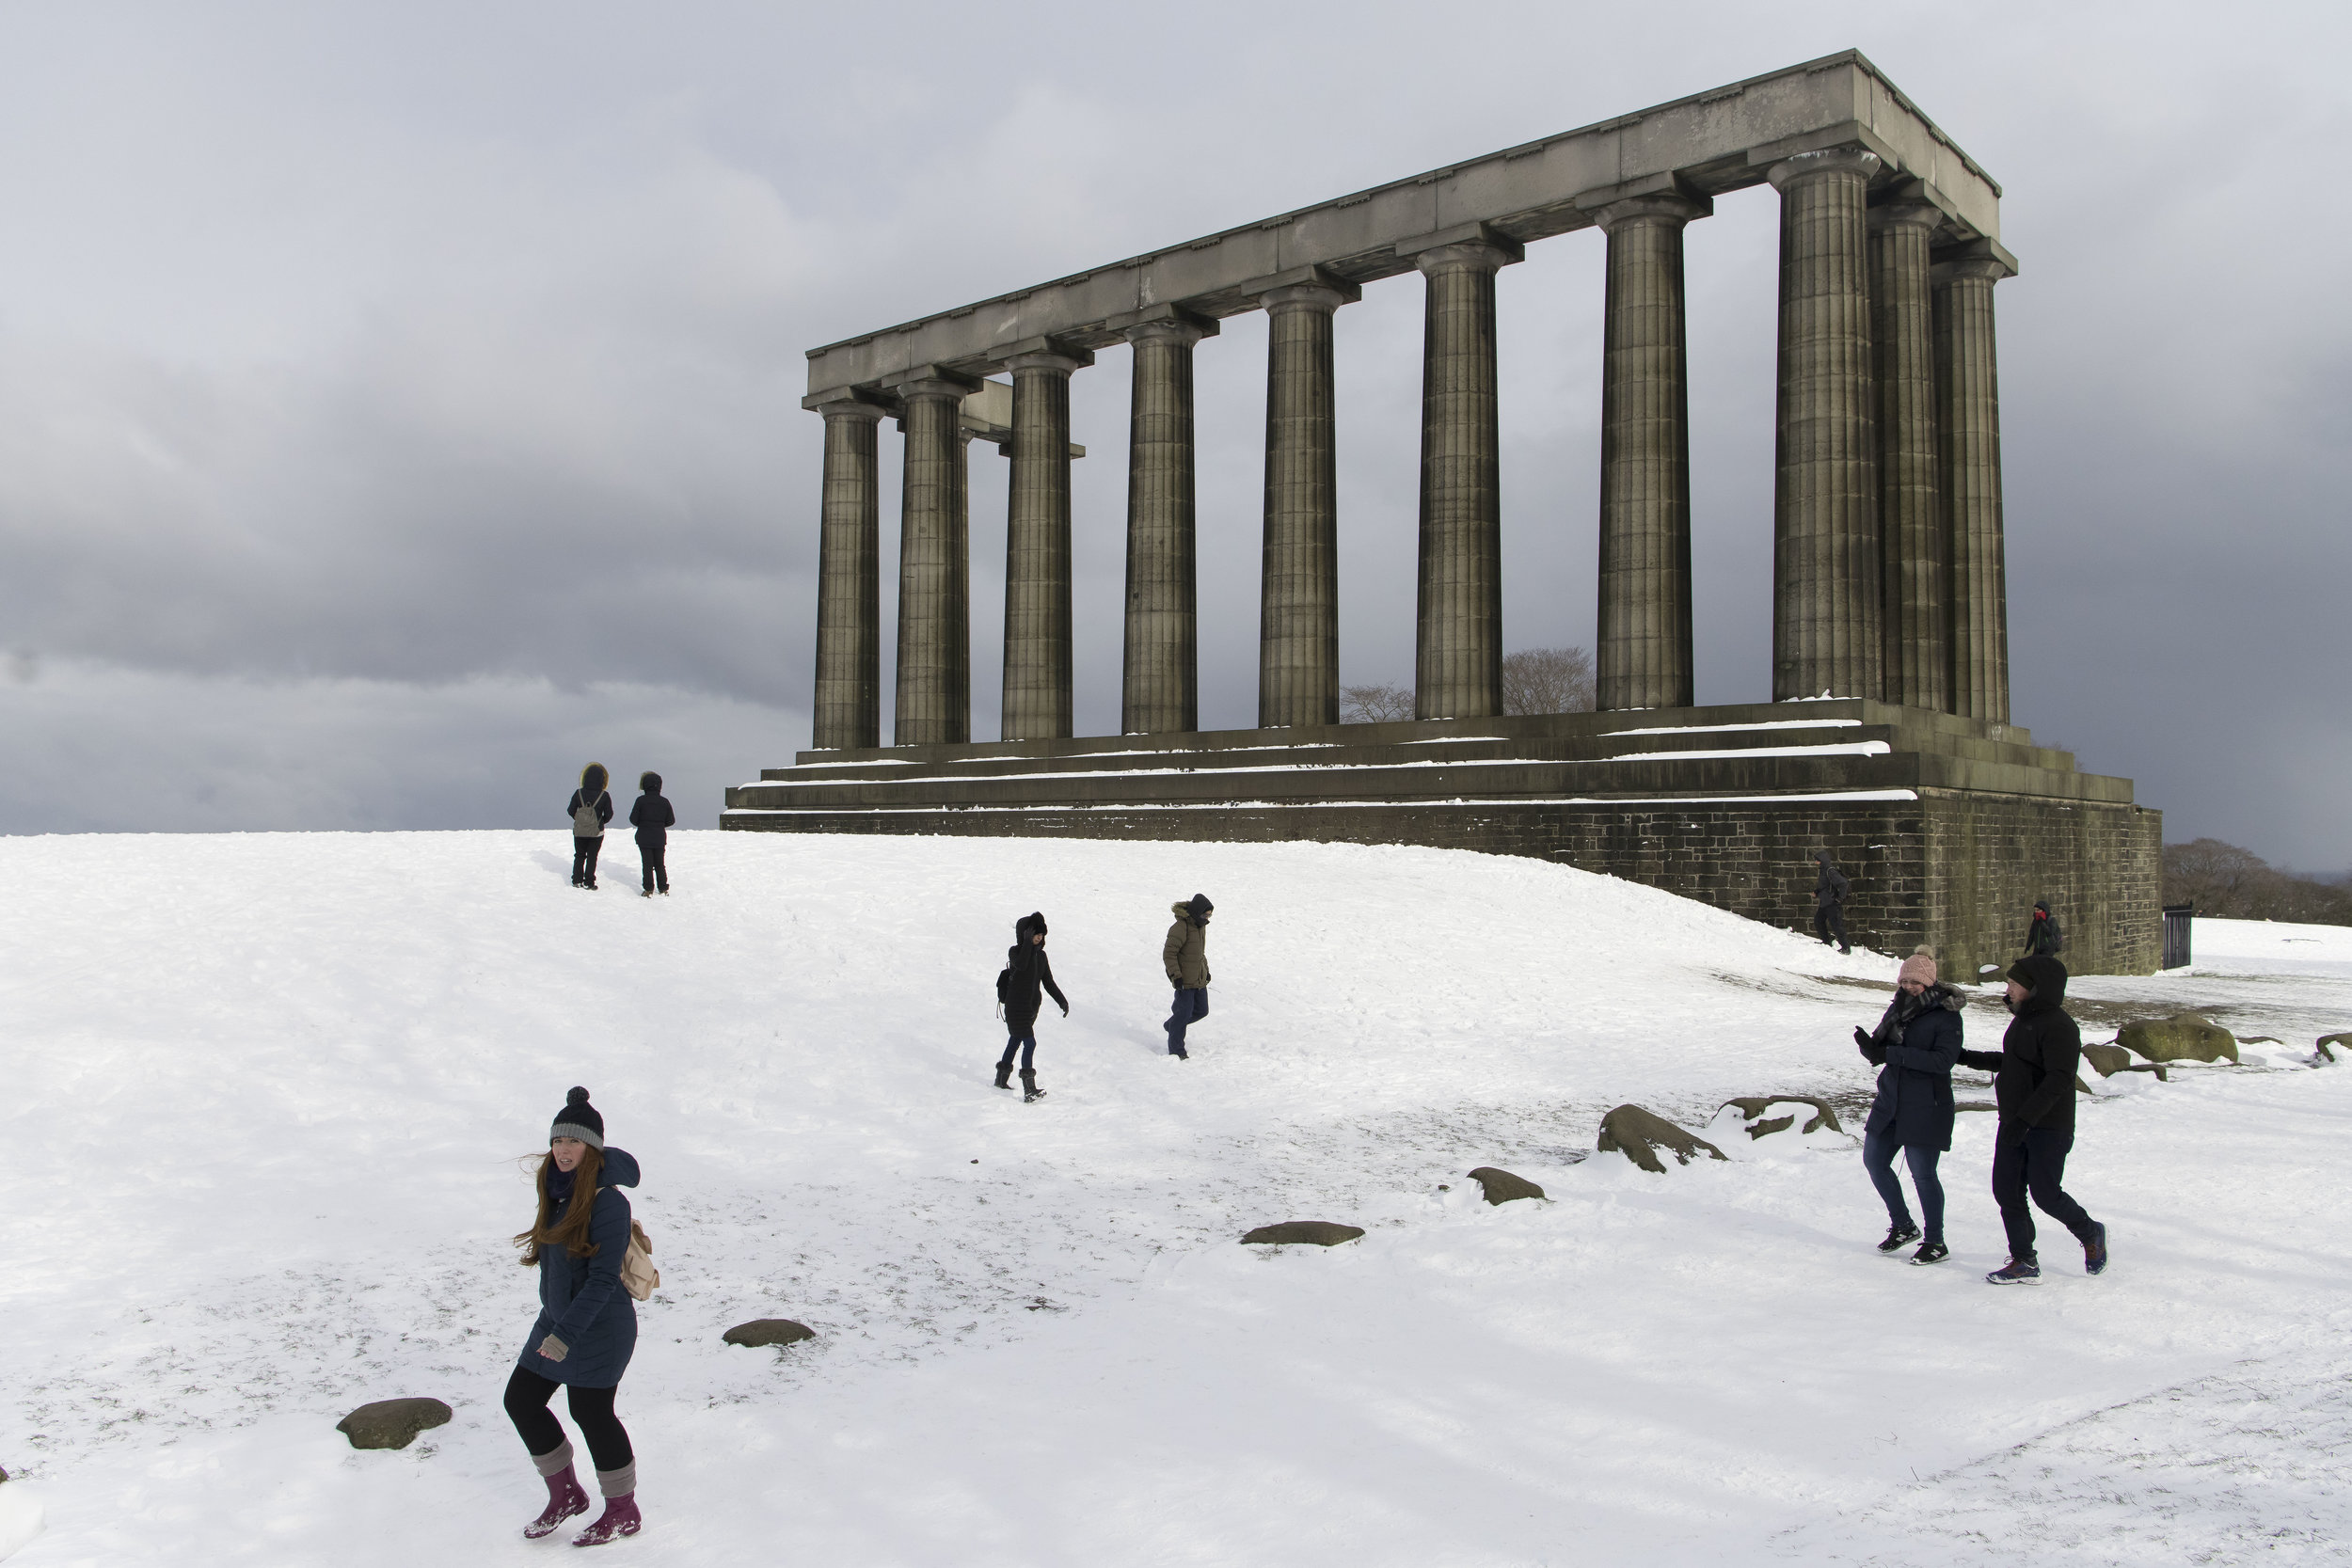 EDINBURGH, SCOTLAND - MARCH 1: A National Monument seen covered in snow at Calton Hill which overlooks the city centre following heavy snowfall on March 1, 2018 in Edinburgh, United Kingdom. People have been warned not to make unnecessary journeys as the Met office issues a red weather be aware warning for parts of Wales and South West England following the one currently in place in Scotland. (Photo by Matthew Horwood/Getty Images)